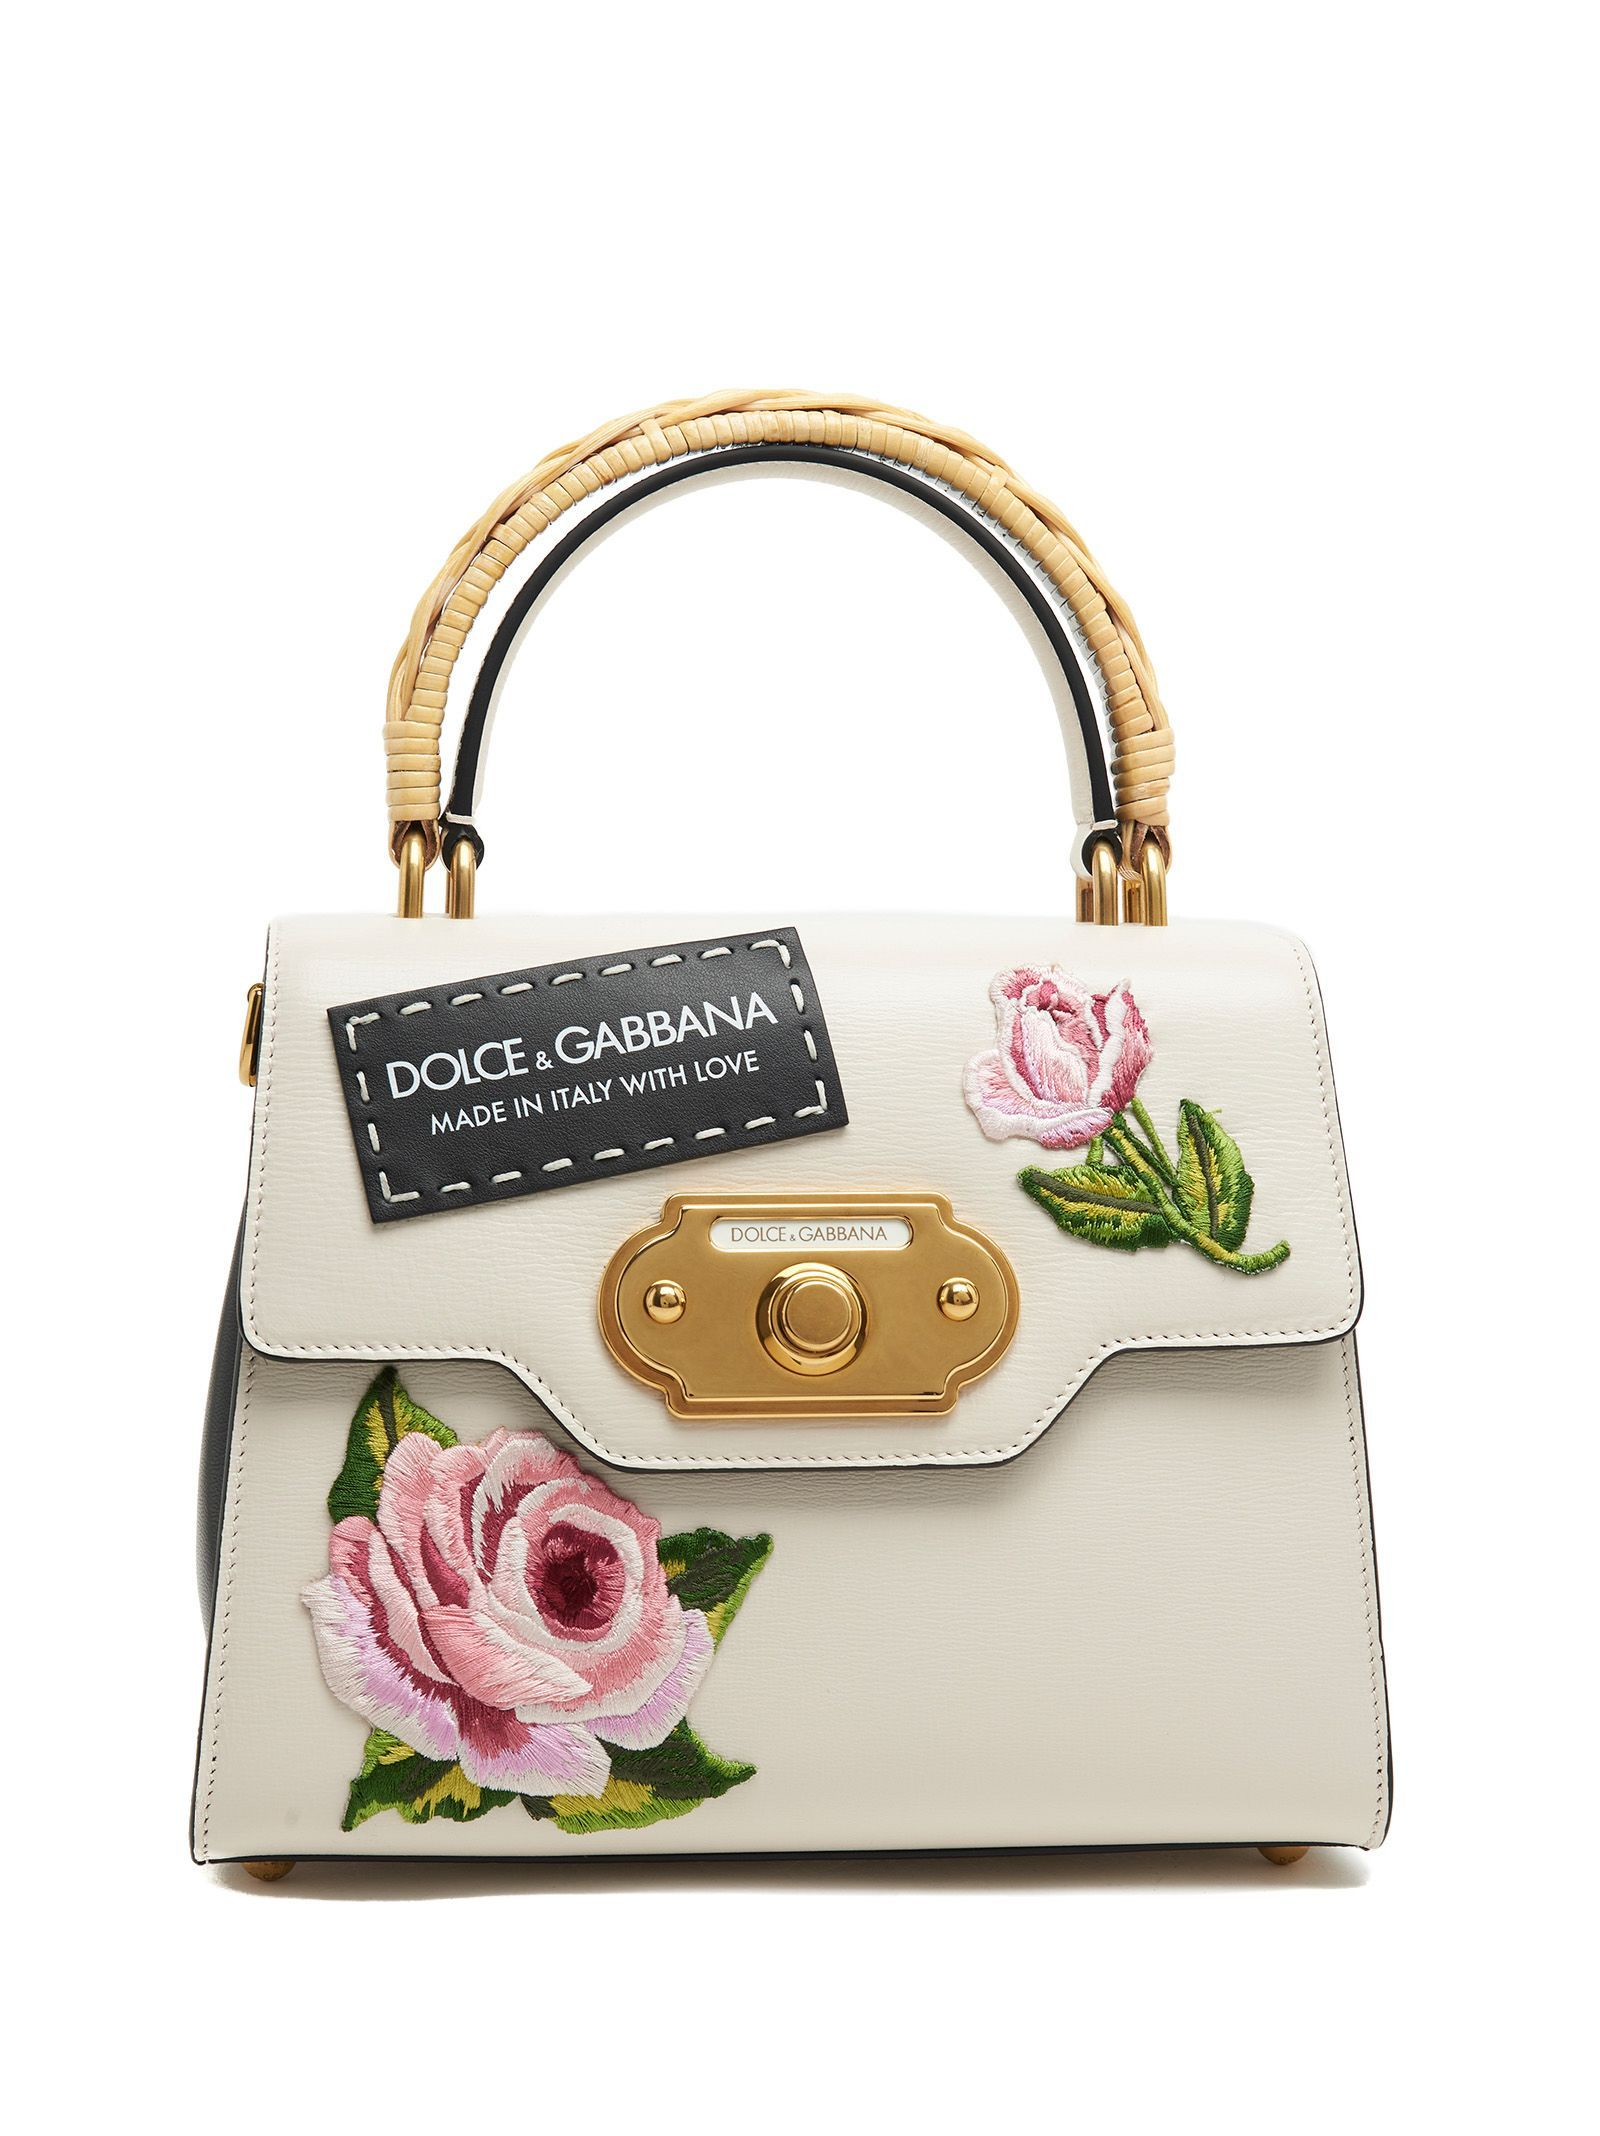 Dolce & Gabbana Small Leather Goods - NYLON PRINTED PURSE WITH EMBROIDERY Manchester Great Sale LrAQjn4xr